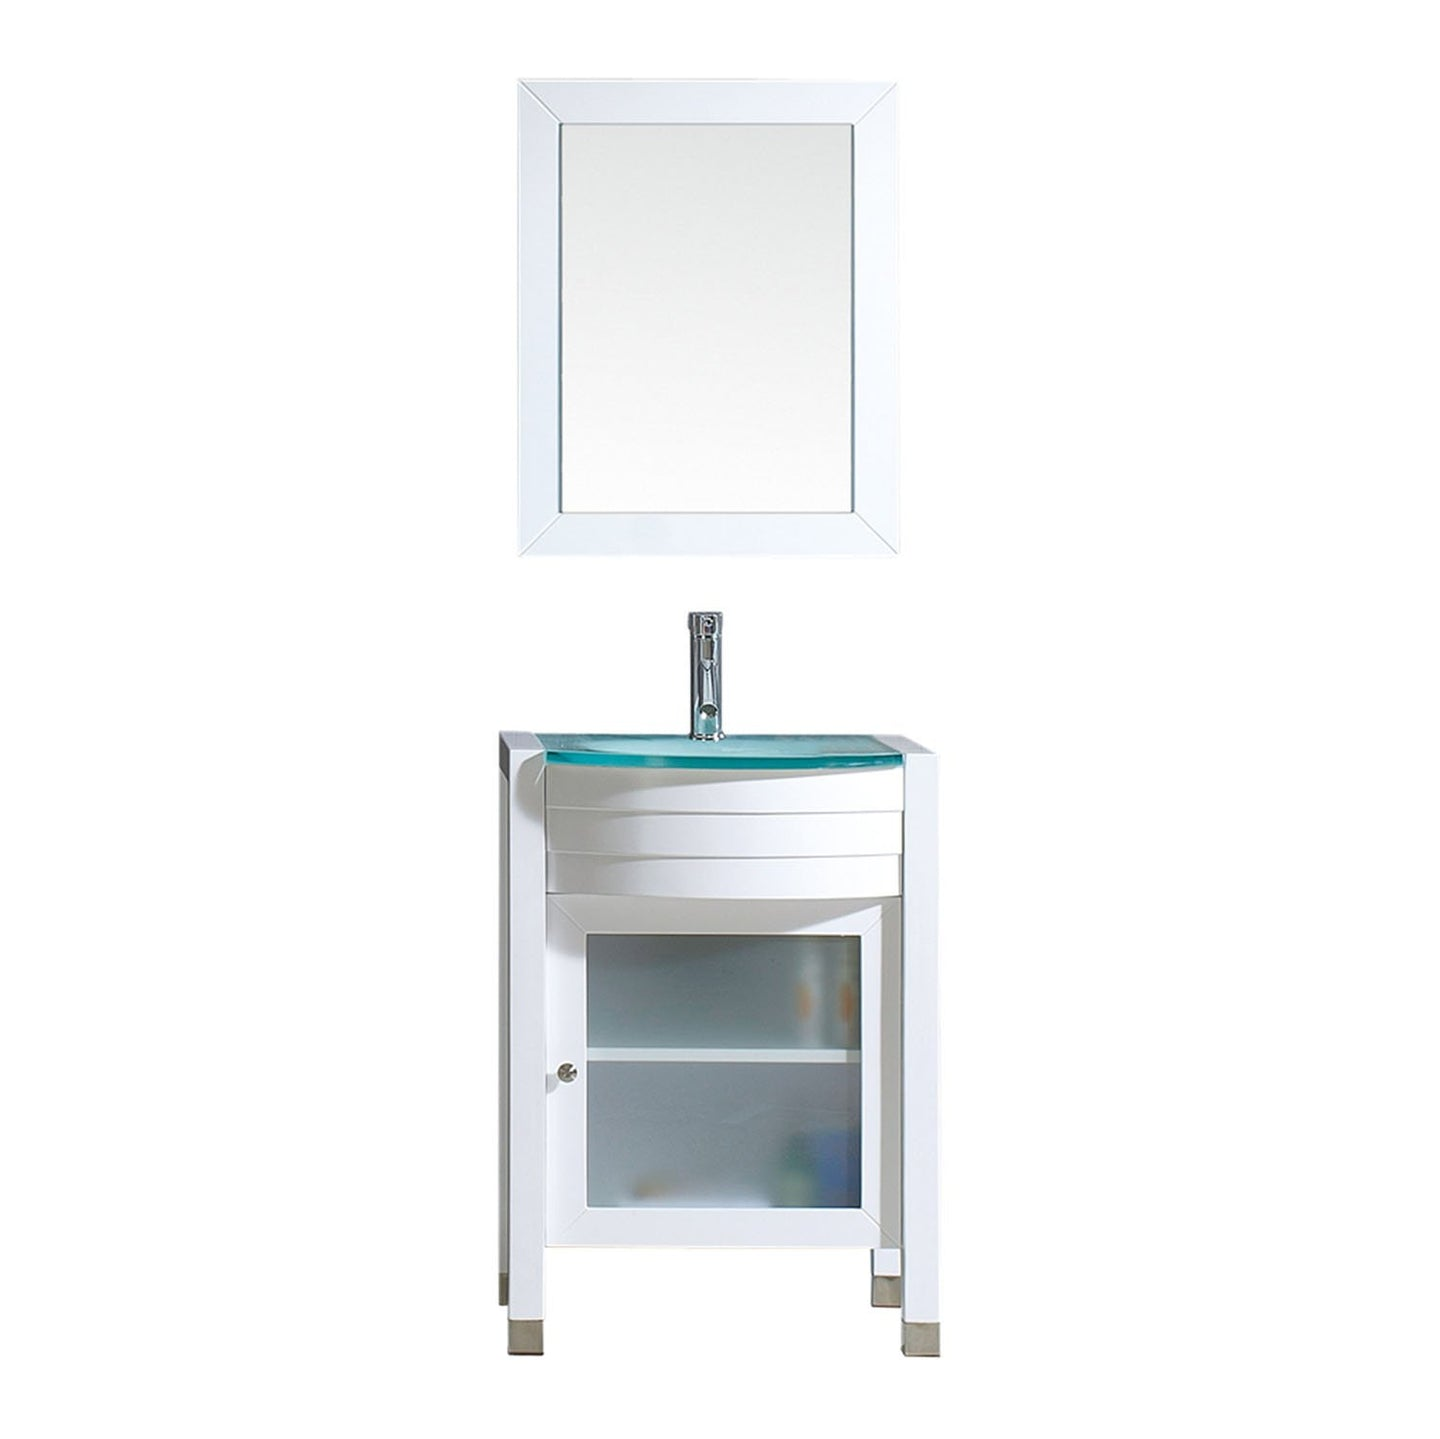 Ava 24″ Single Bathroom Vanity in White with Aqua Tempered Glass Top Round Sink and Brushed Nickel Faucet with MIrror